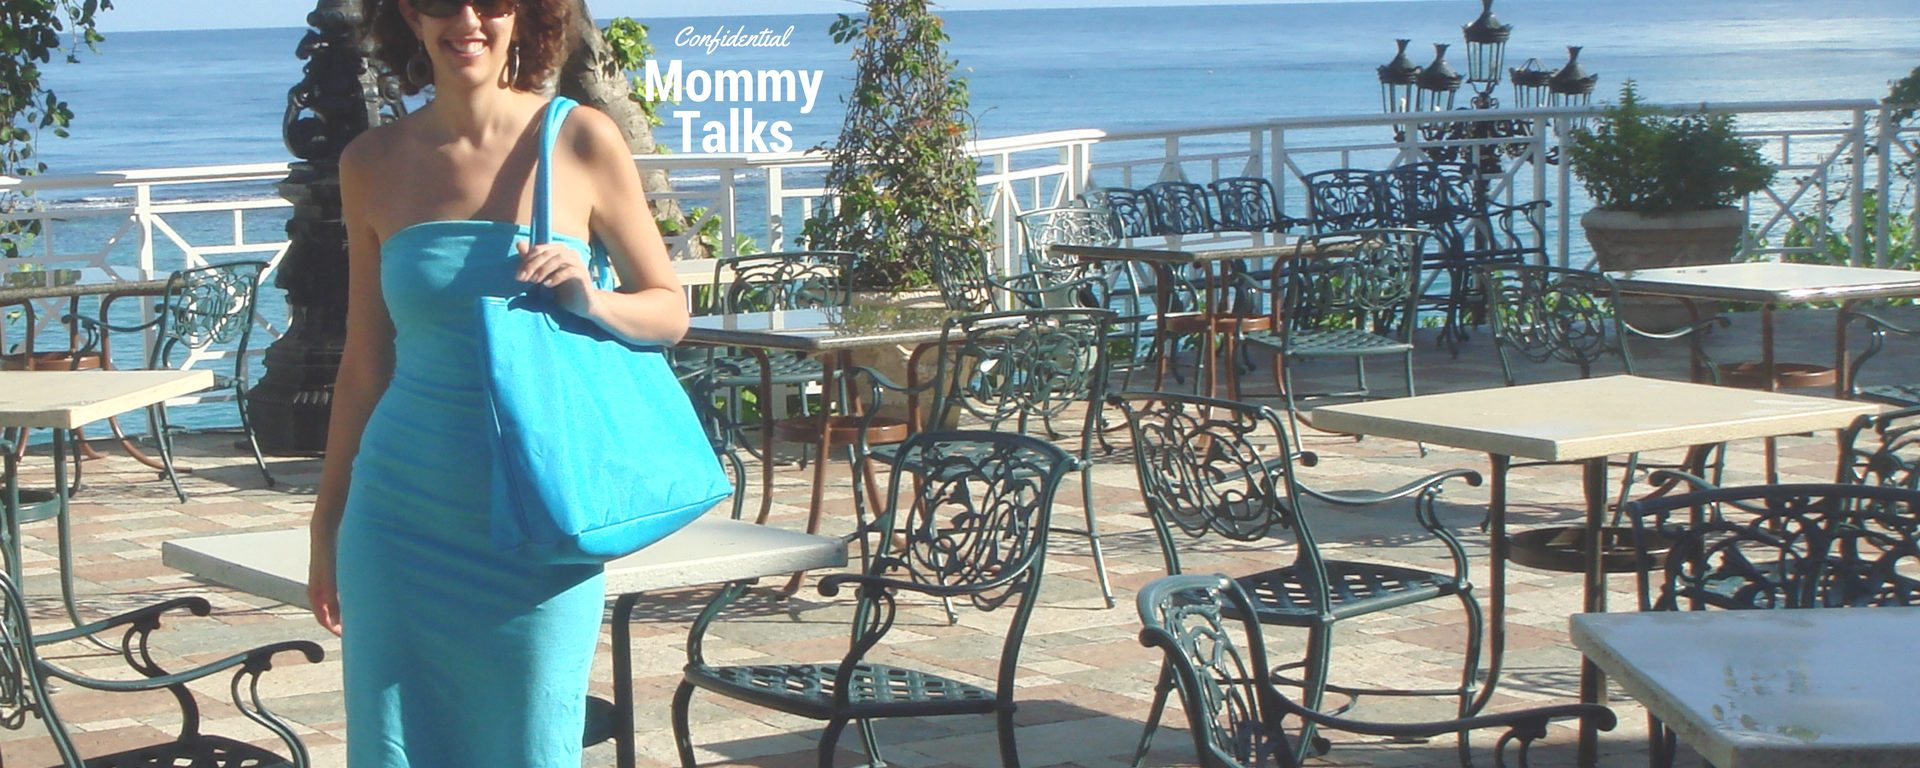 The truth behind being an expat mom